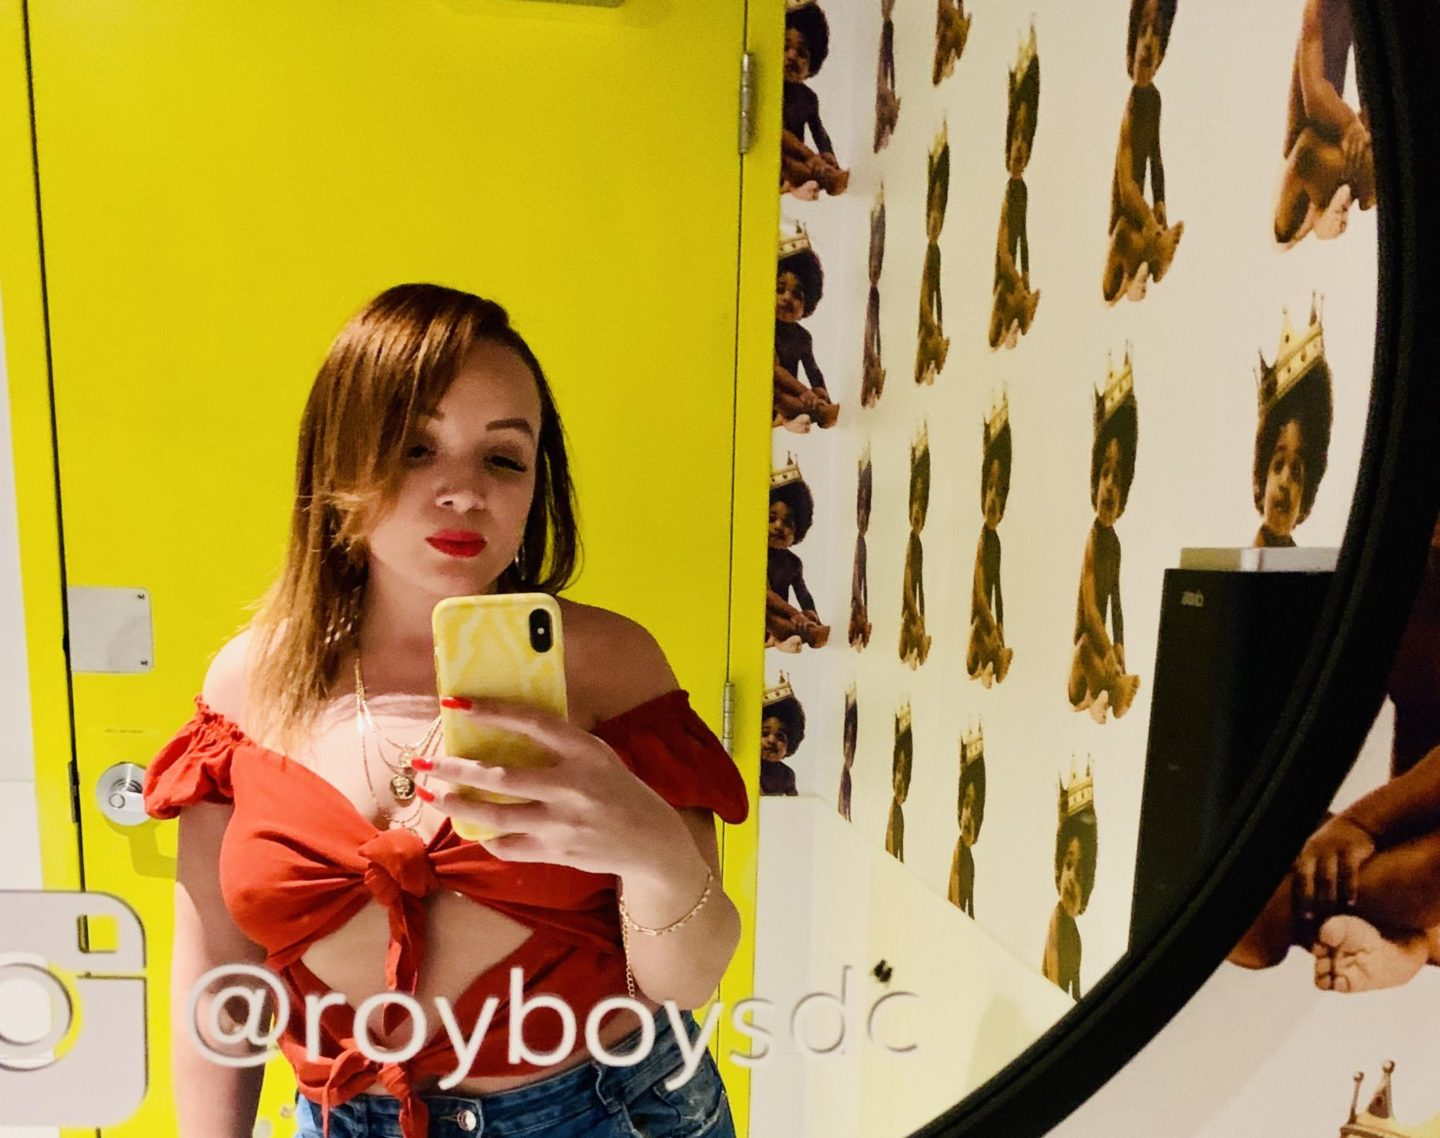 @thegoddessofstyle's cover photo for 'I ate at Roy Boys in DC and here's what I think... - The Goddess Lifestyle'